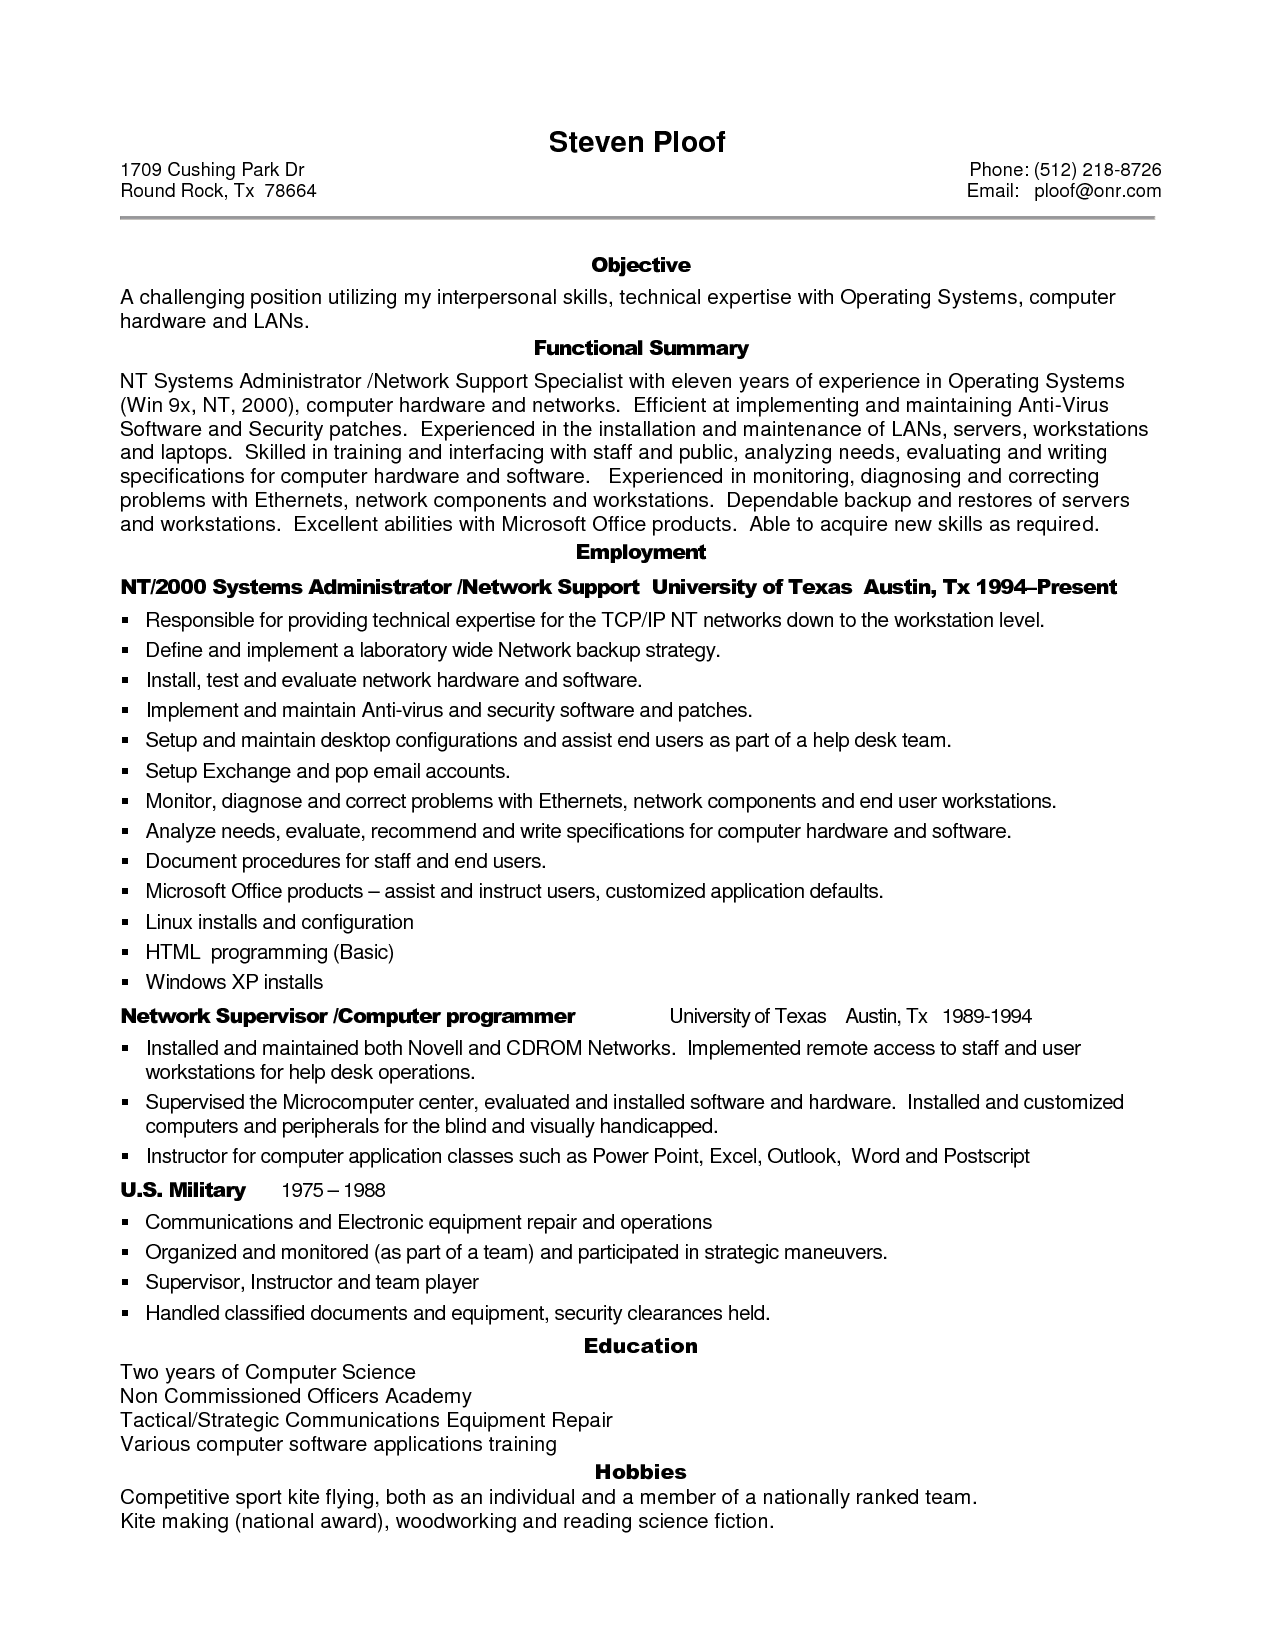 Sample Resume For Experienced It Professional Sample Resume For Experienced  It Professional, Resume Tips For  Tips On Making A Resume